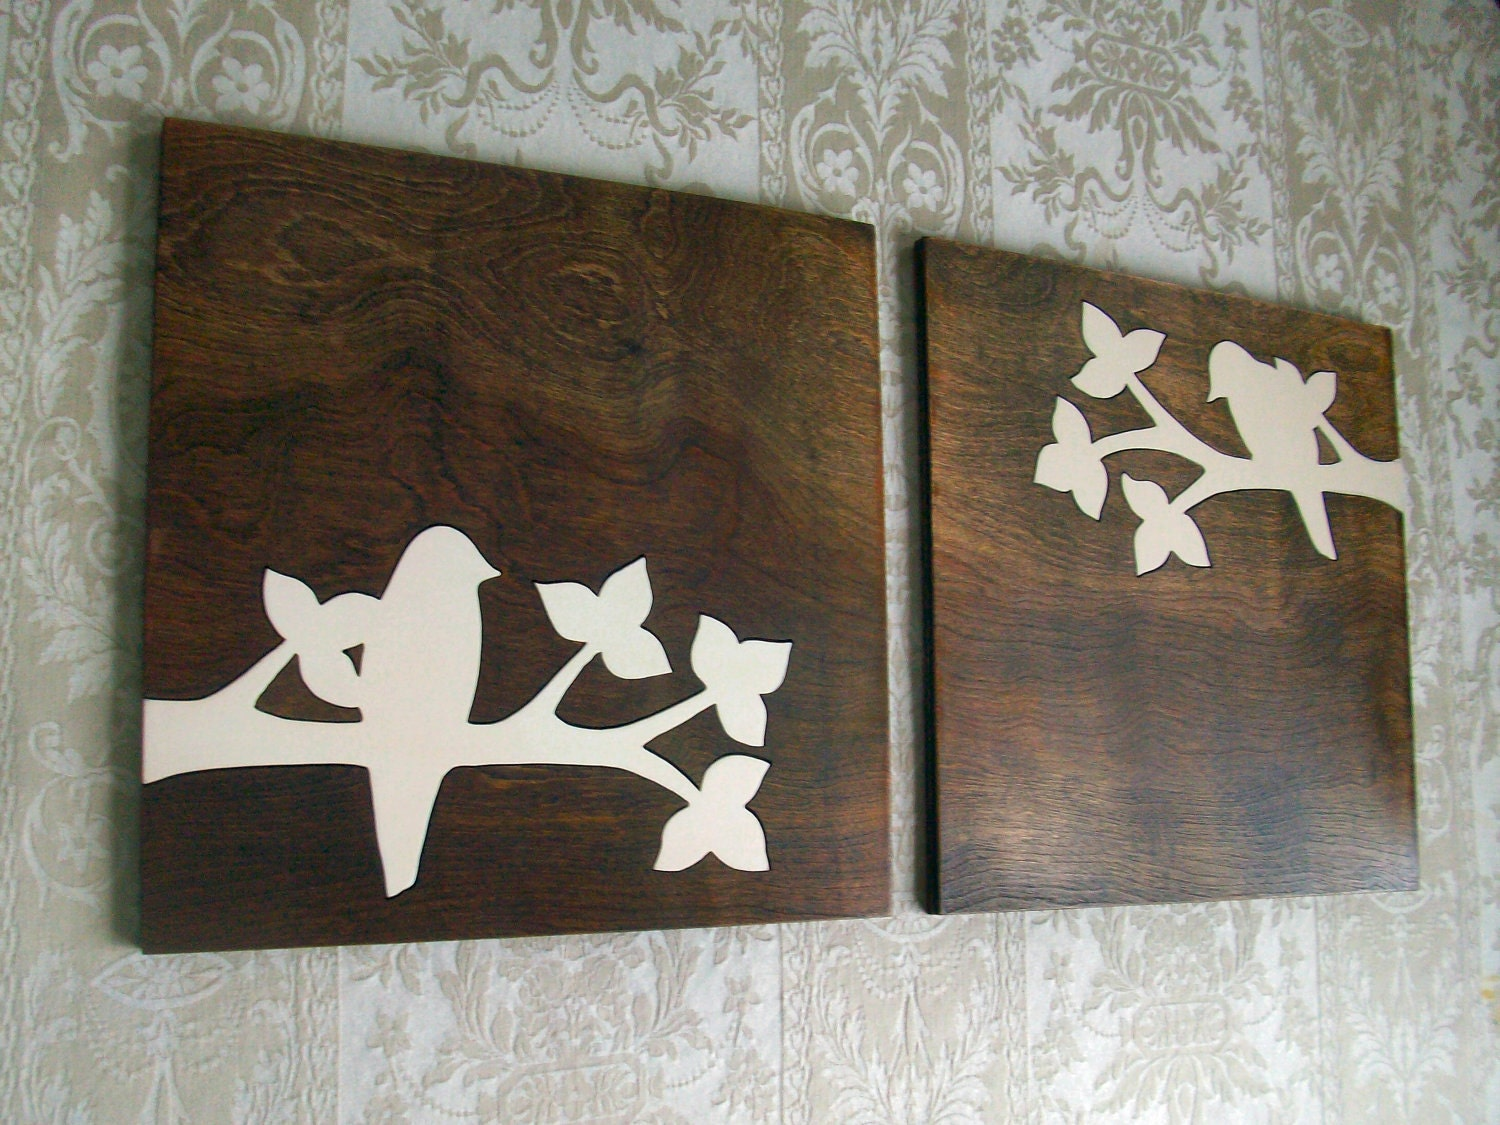 Homemade Rustic Wall Decor : Rustic bird wood wall decor art set by